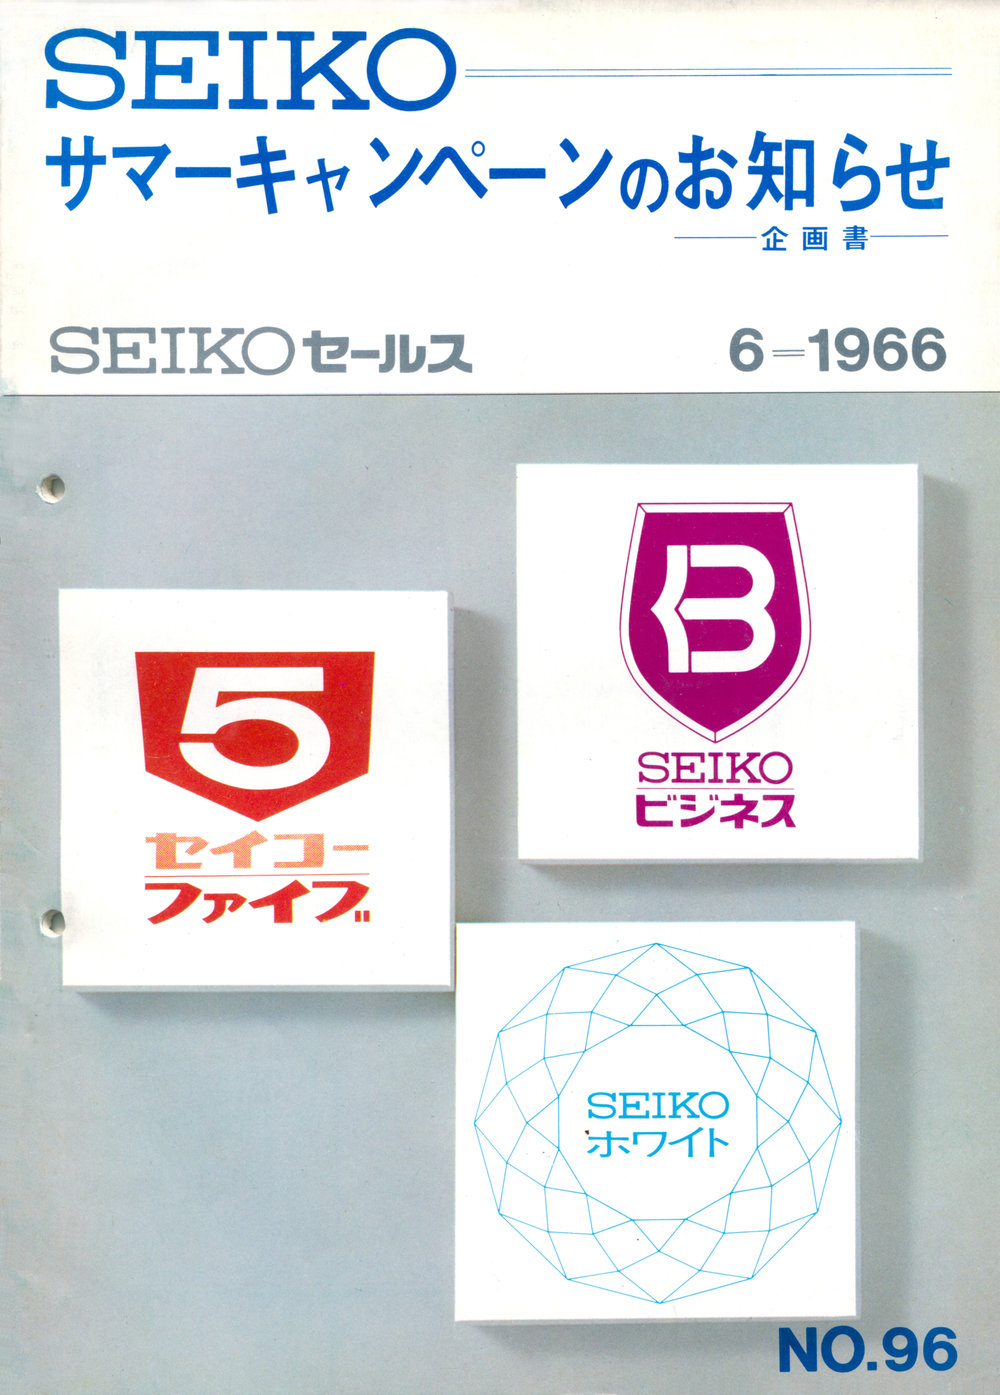 Seiko News 1966-6 No. 96